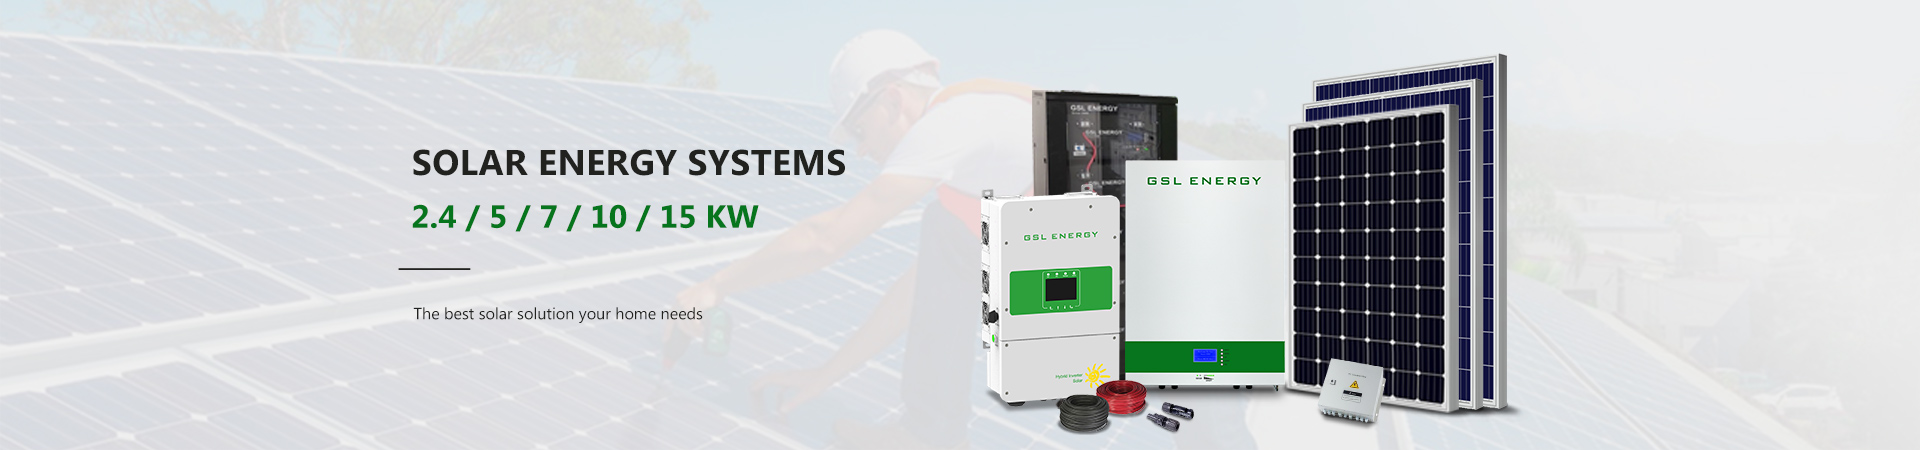 category-Find Solar Battery Storage System, Professional Solar Energy Storage-GSL ENERGY-img-2